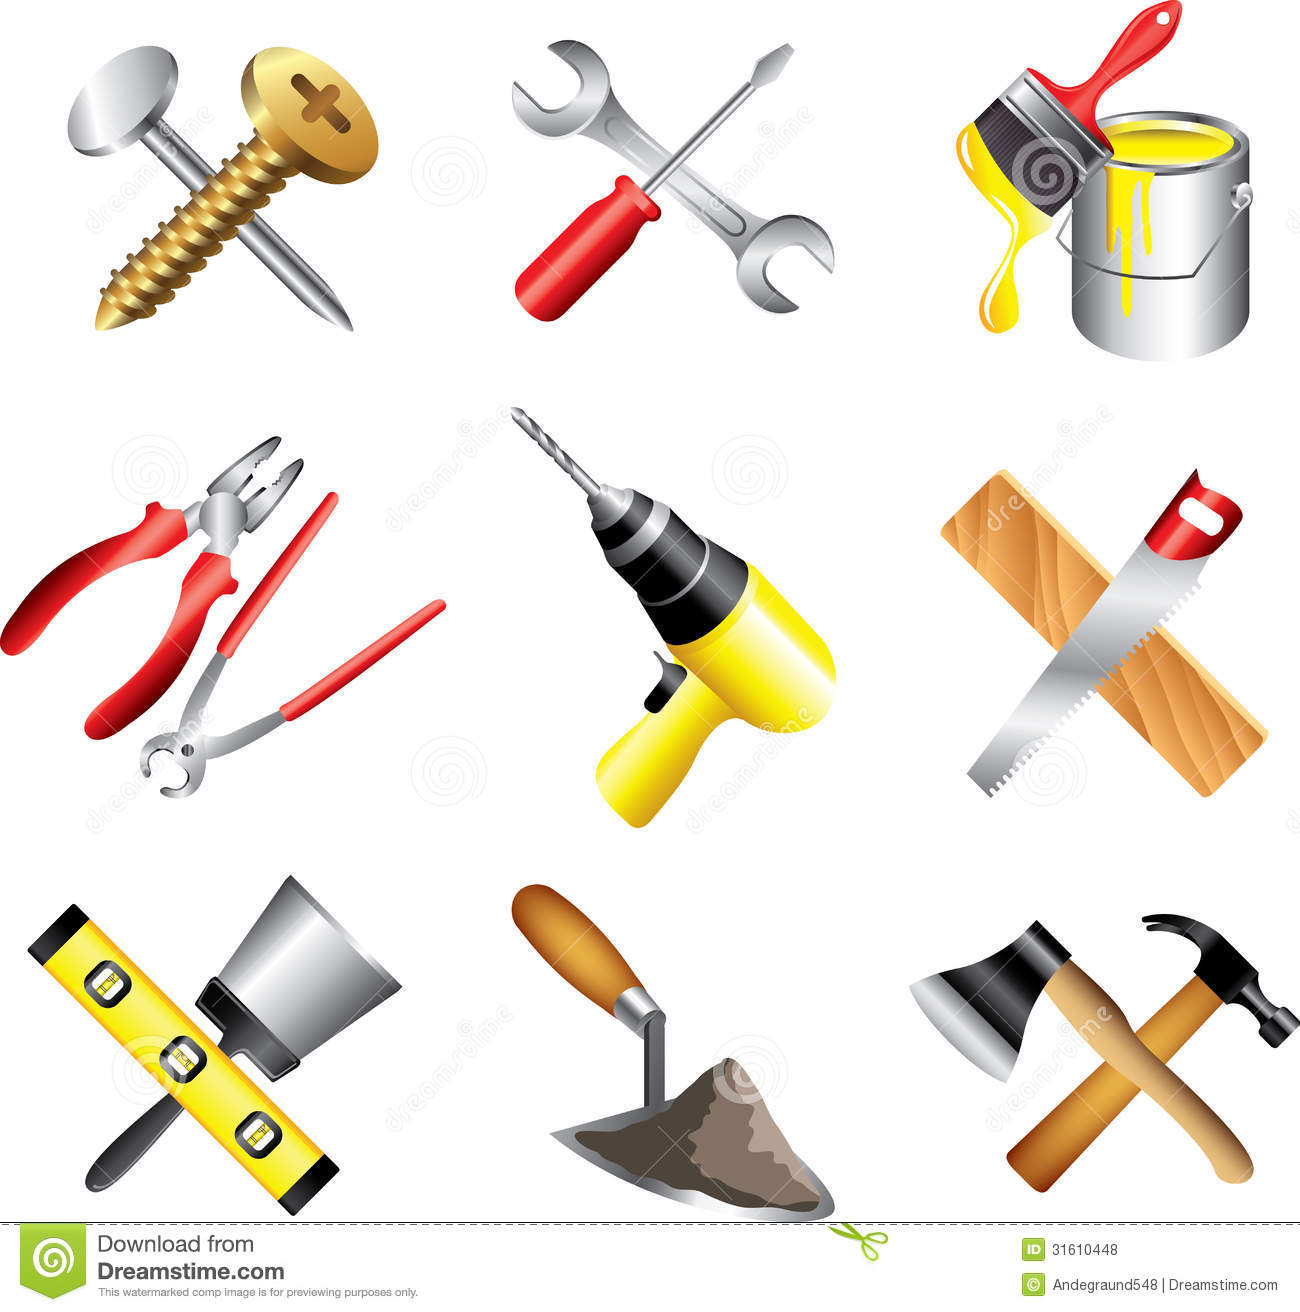 12 Construction Tools And Tool Box Icon Images - Tool Box ...